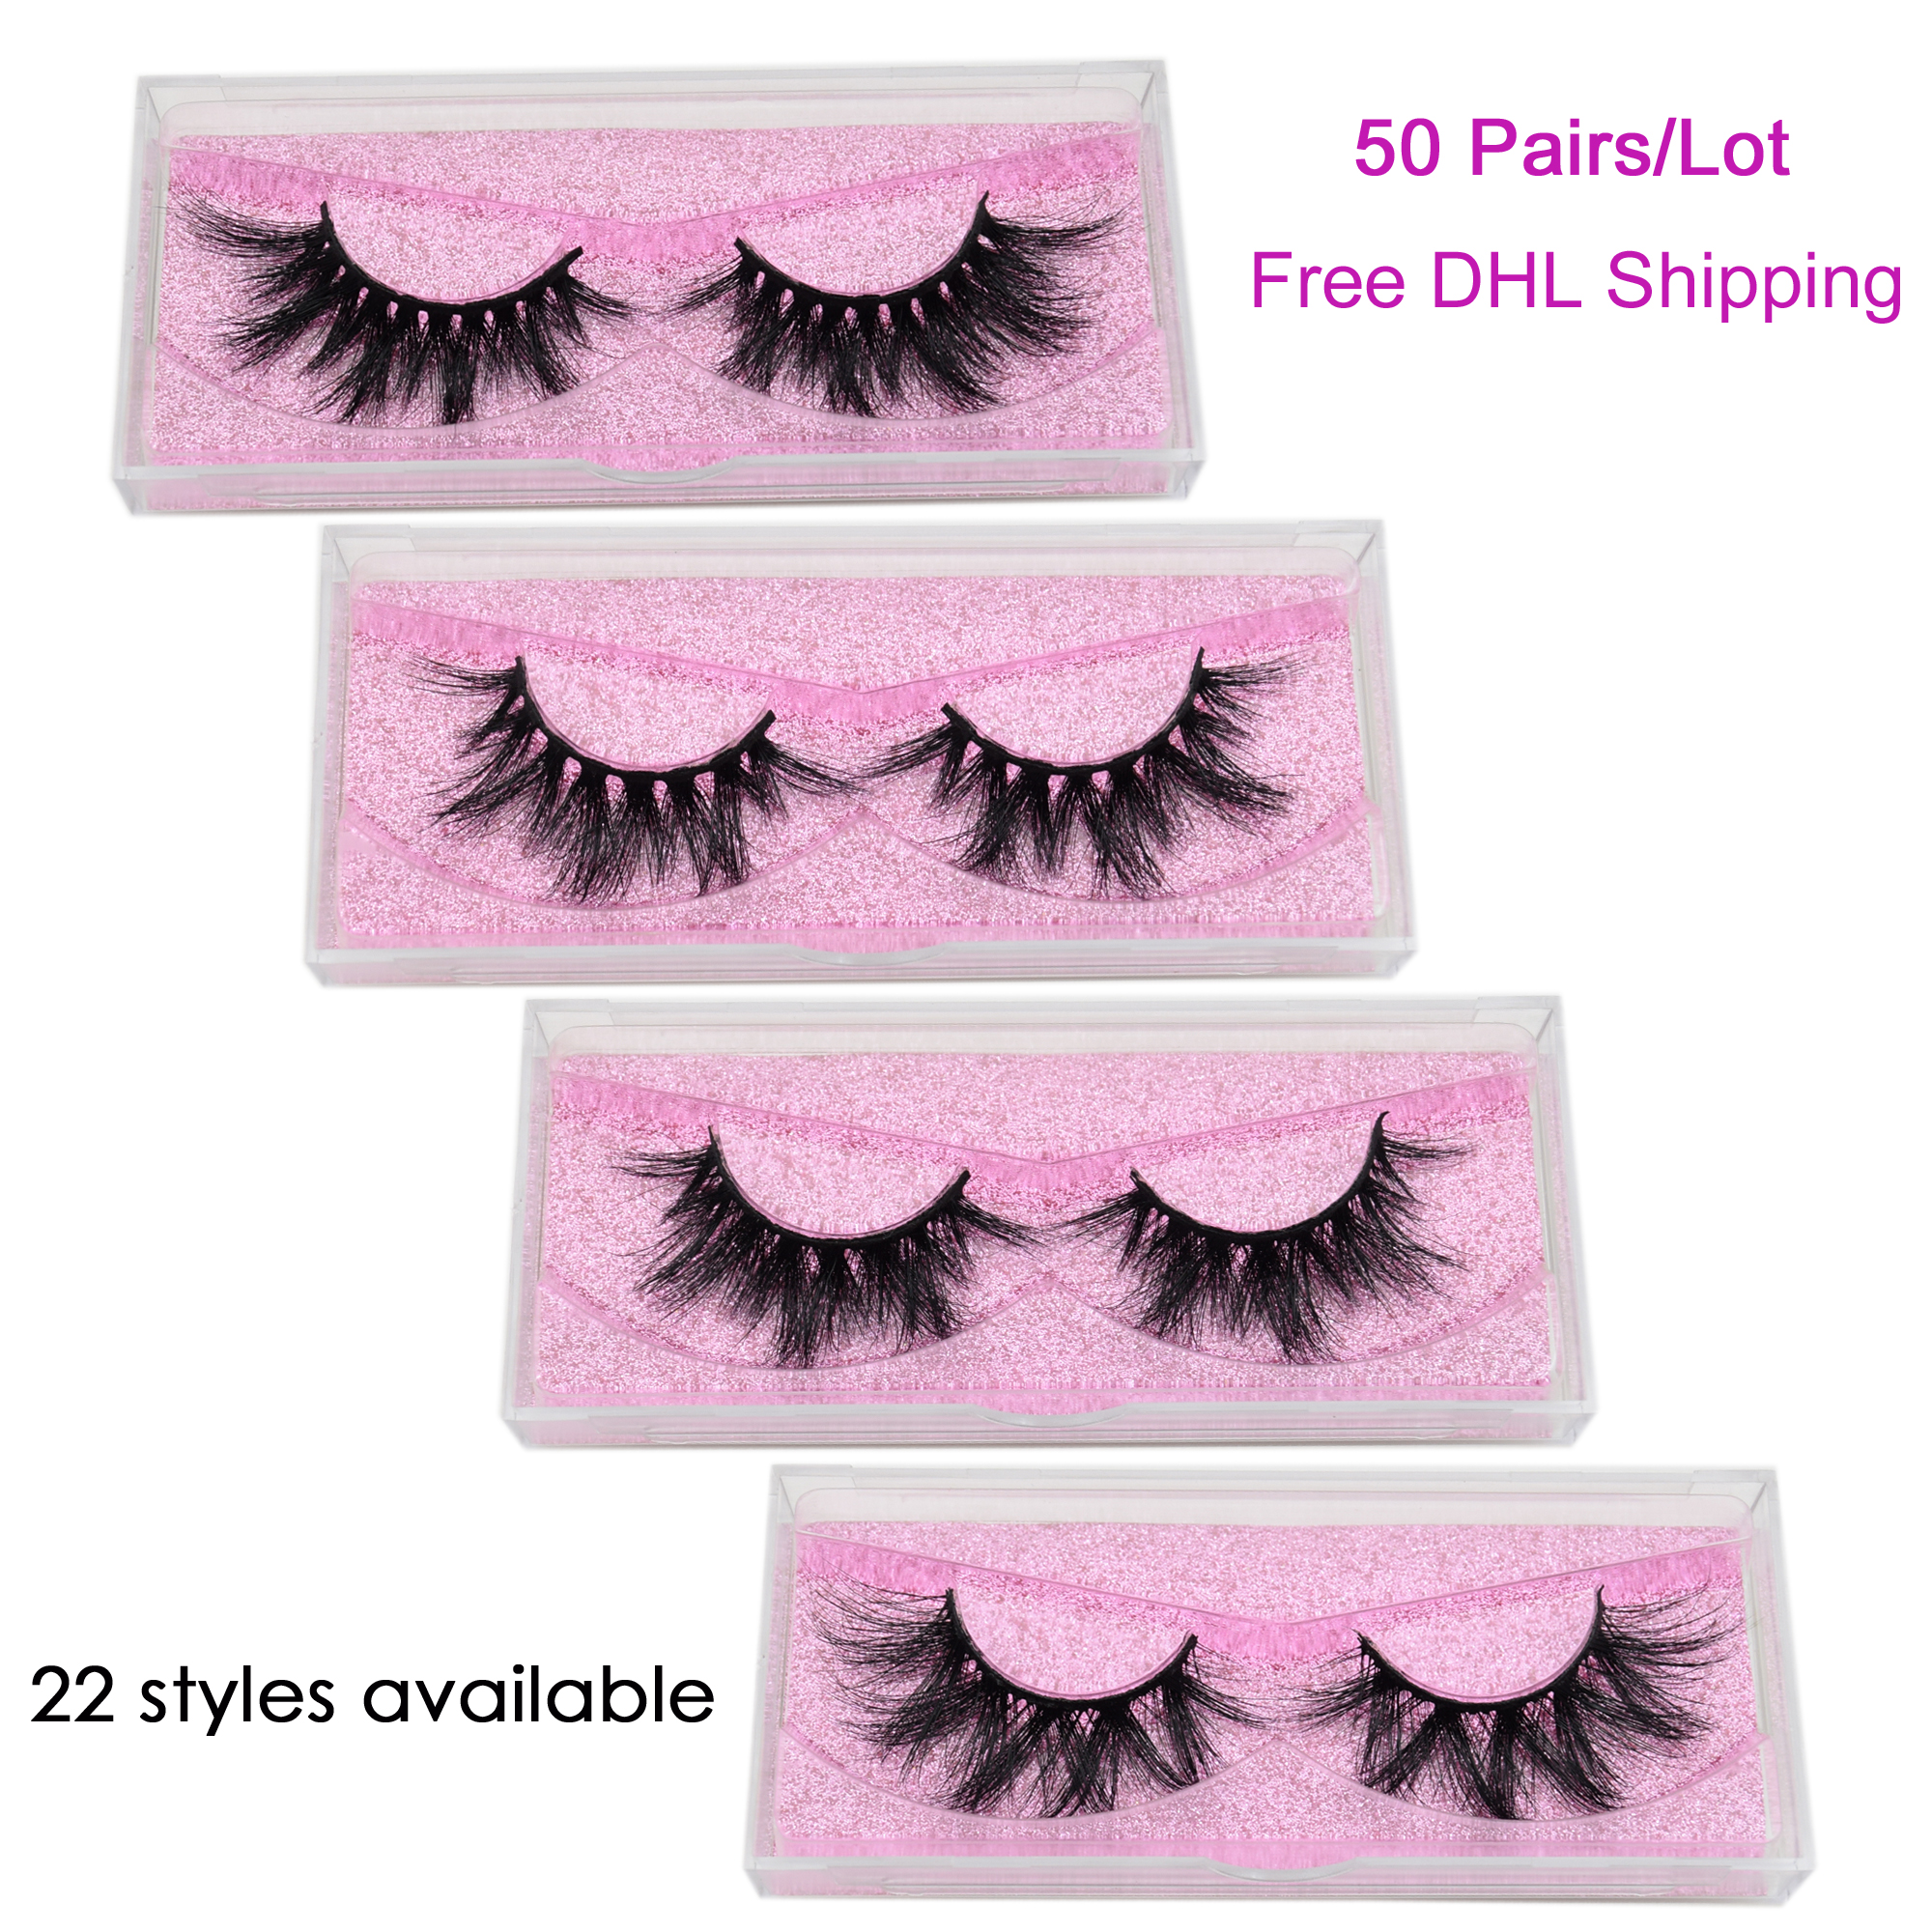 50 Pairs/lot Visofree Eyelashes 3d Mink Lashes Makeup Faux Cils Wholesale Mink Eyelashes Mink Lashes Bulk Thick Crisscross Lash